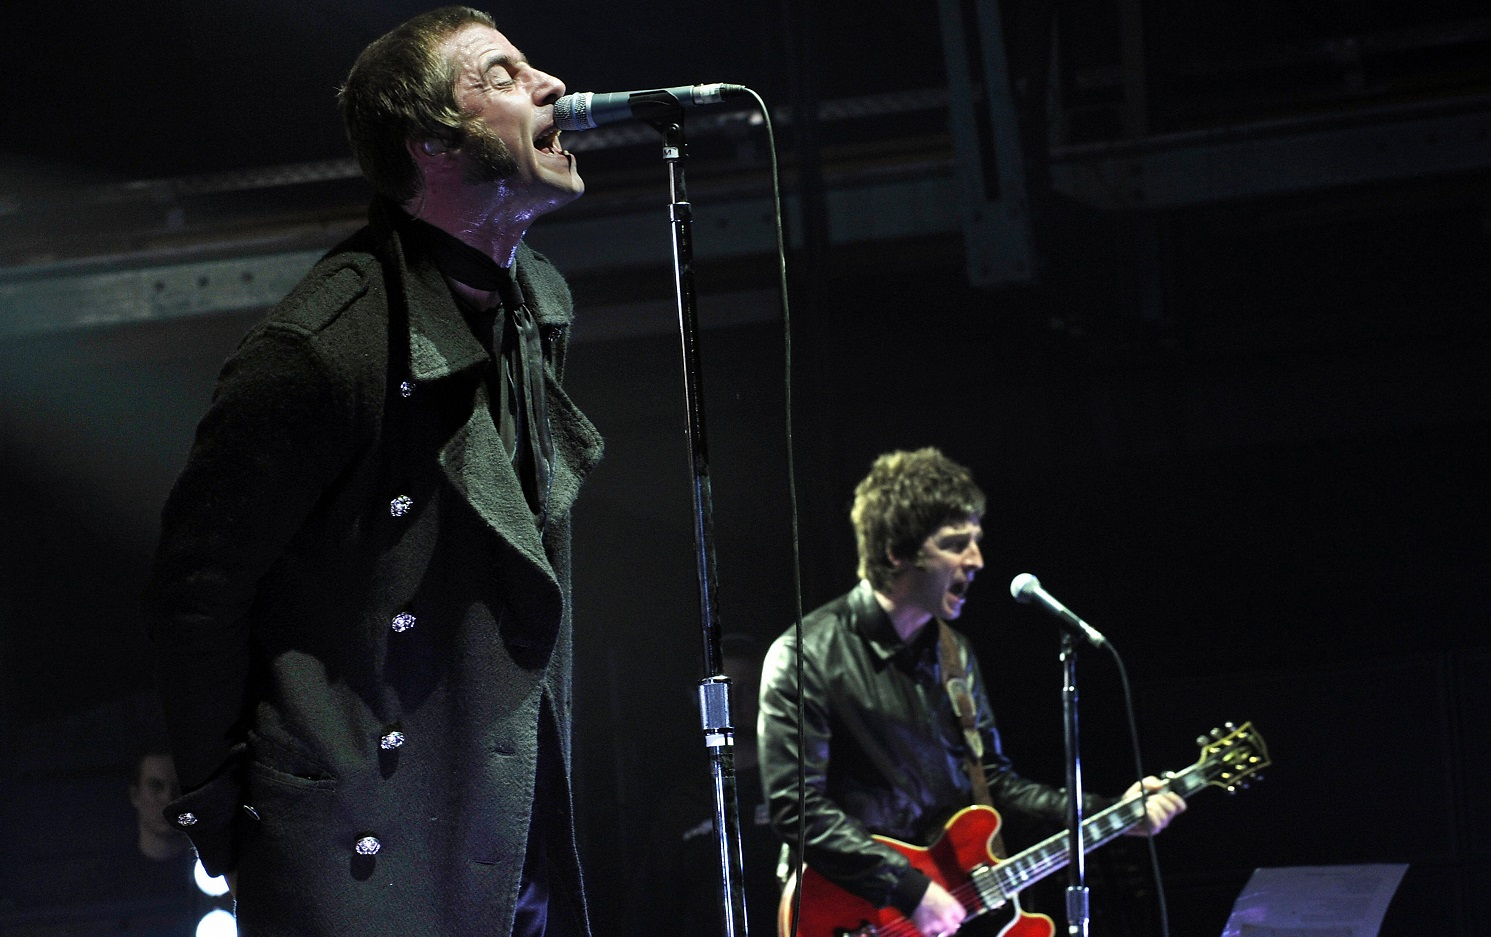 Liam Gallagher le pide a Noel volver a formar Oasis — Twitter